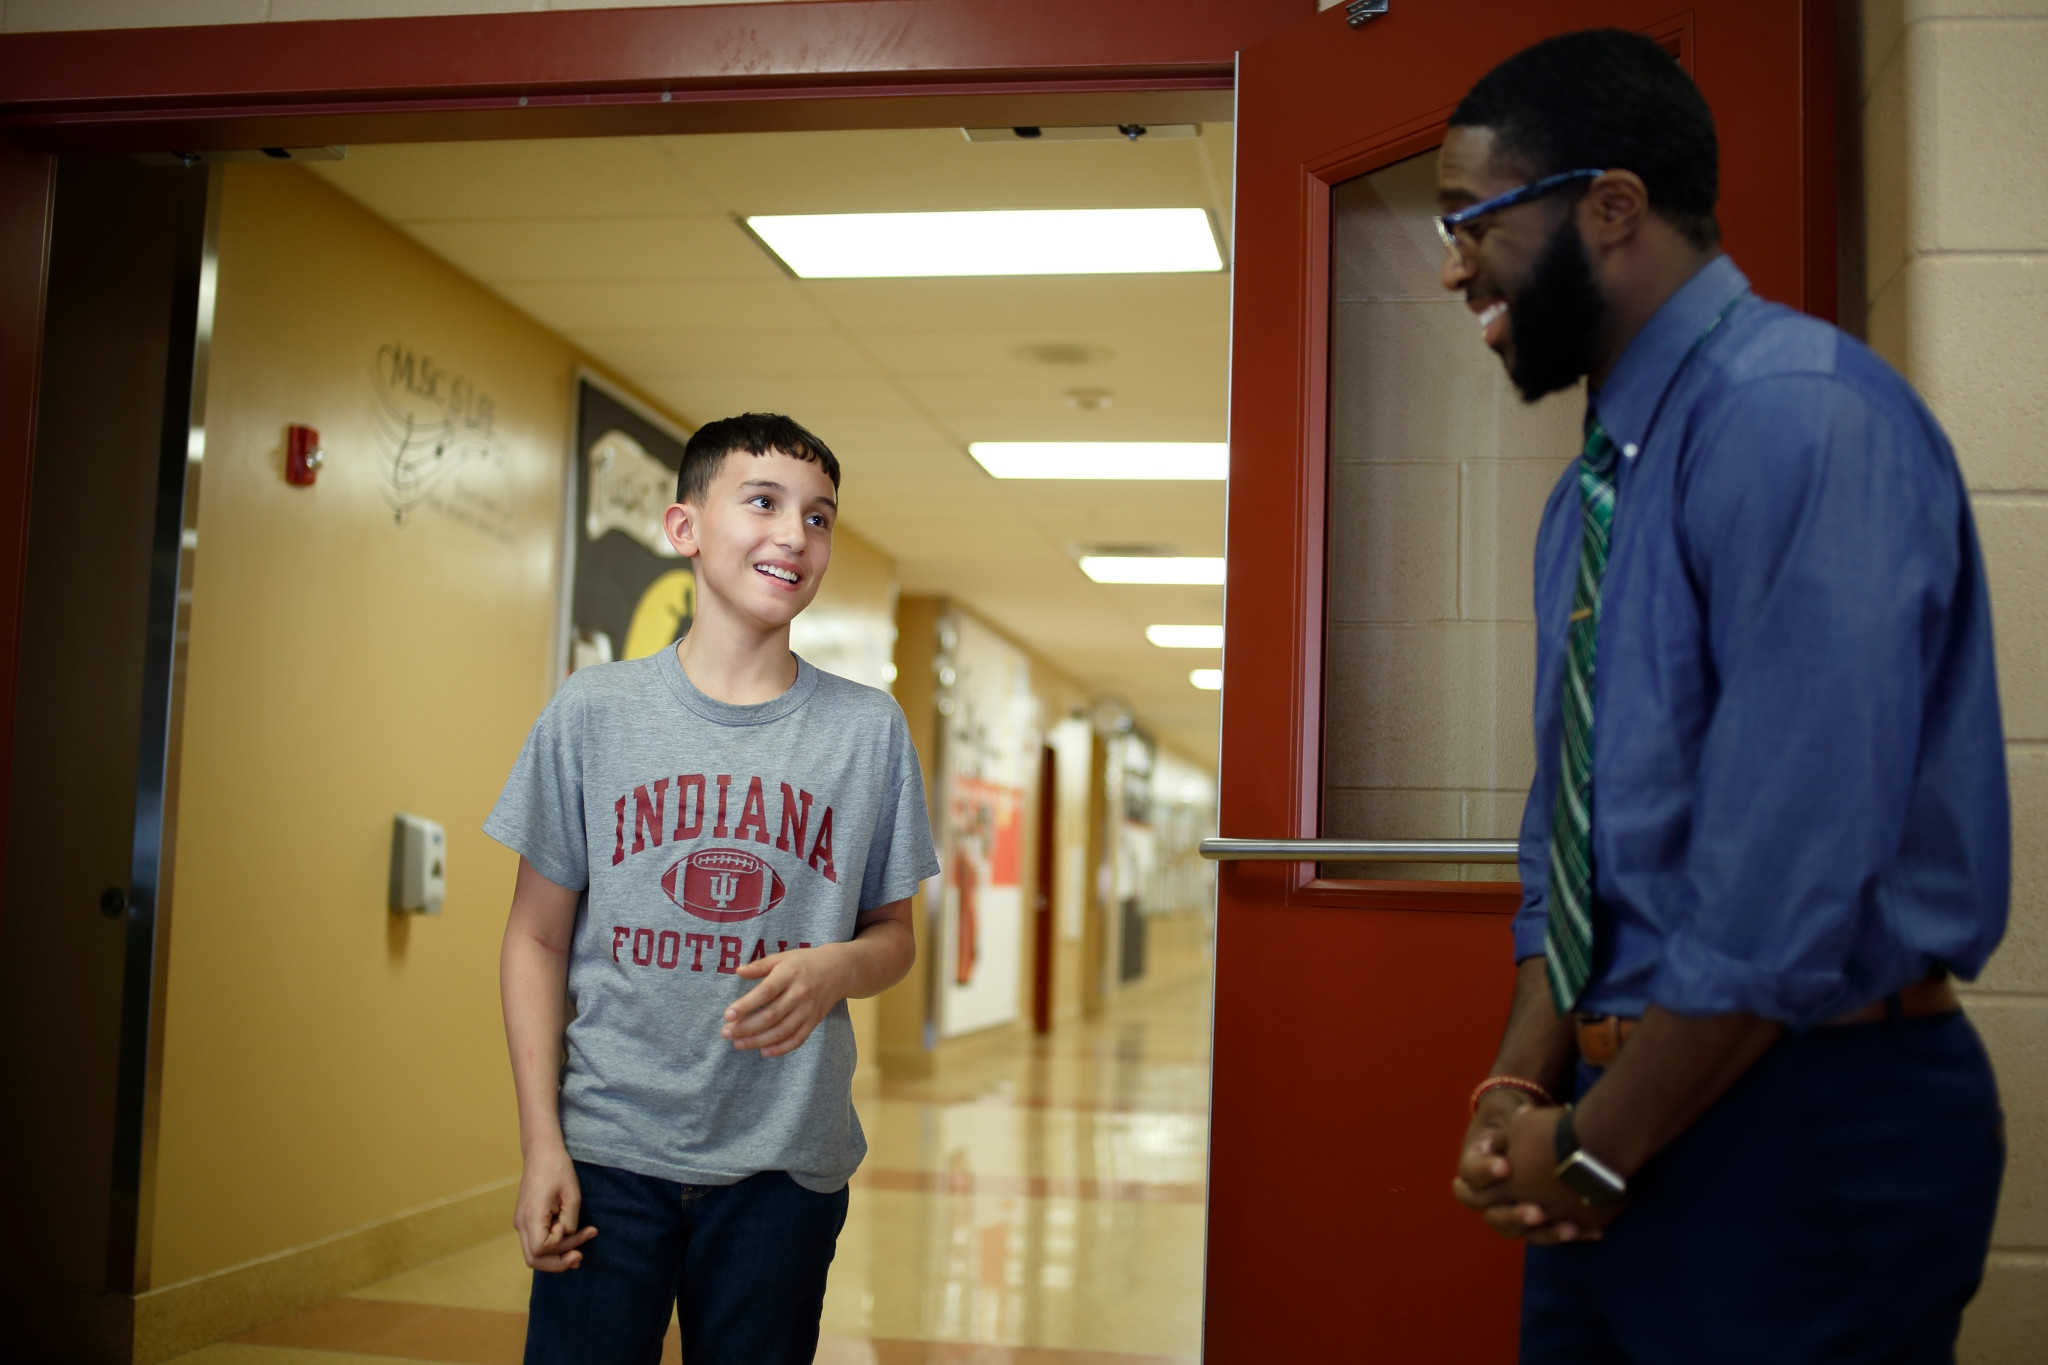 IU staff member mentoring youth at Fairview elementary school.